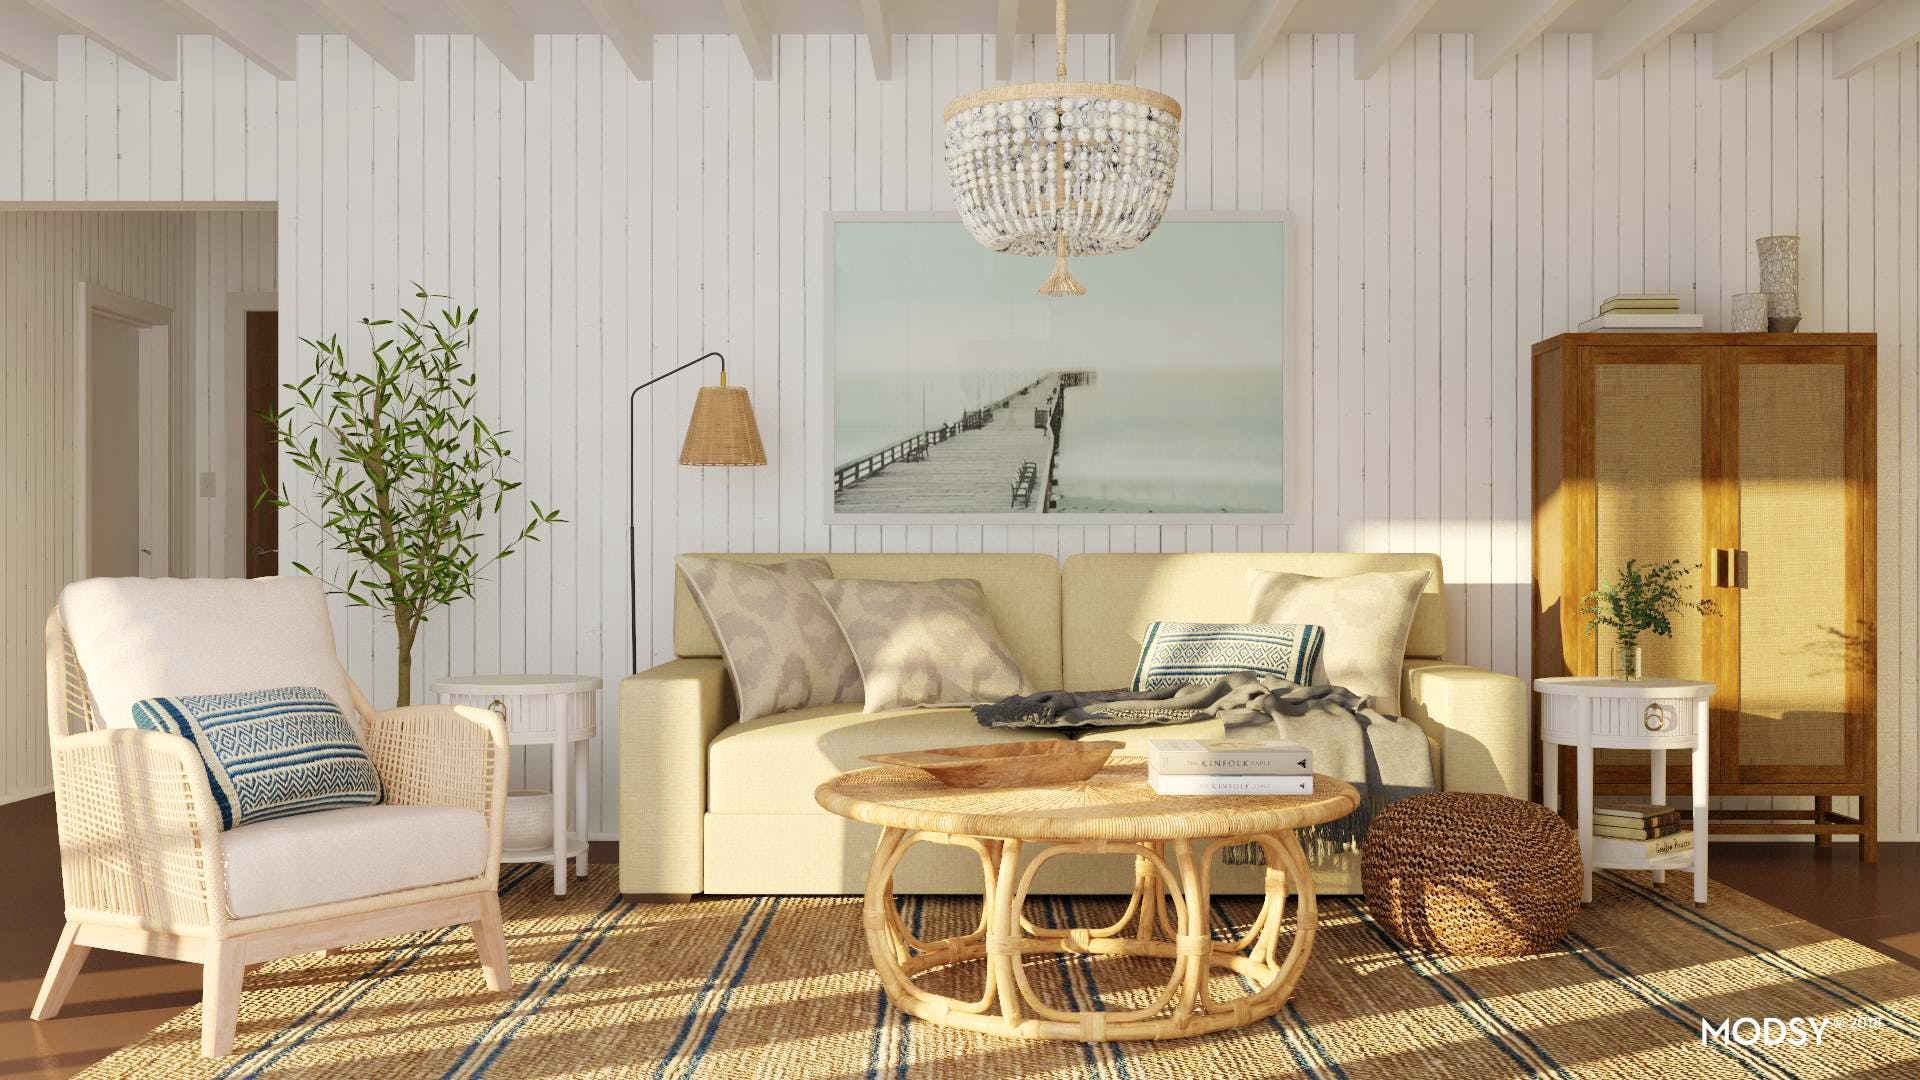 A Coastal Living Room Filled With Mixed Neutrals